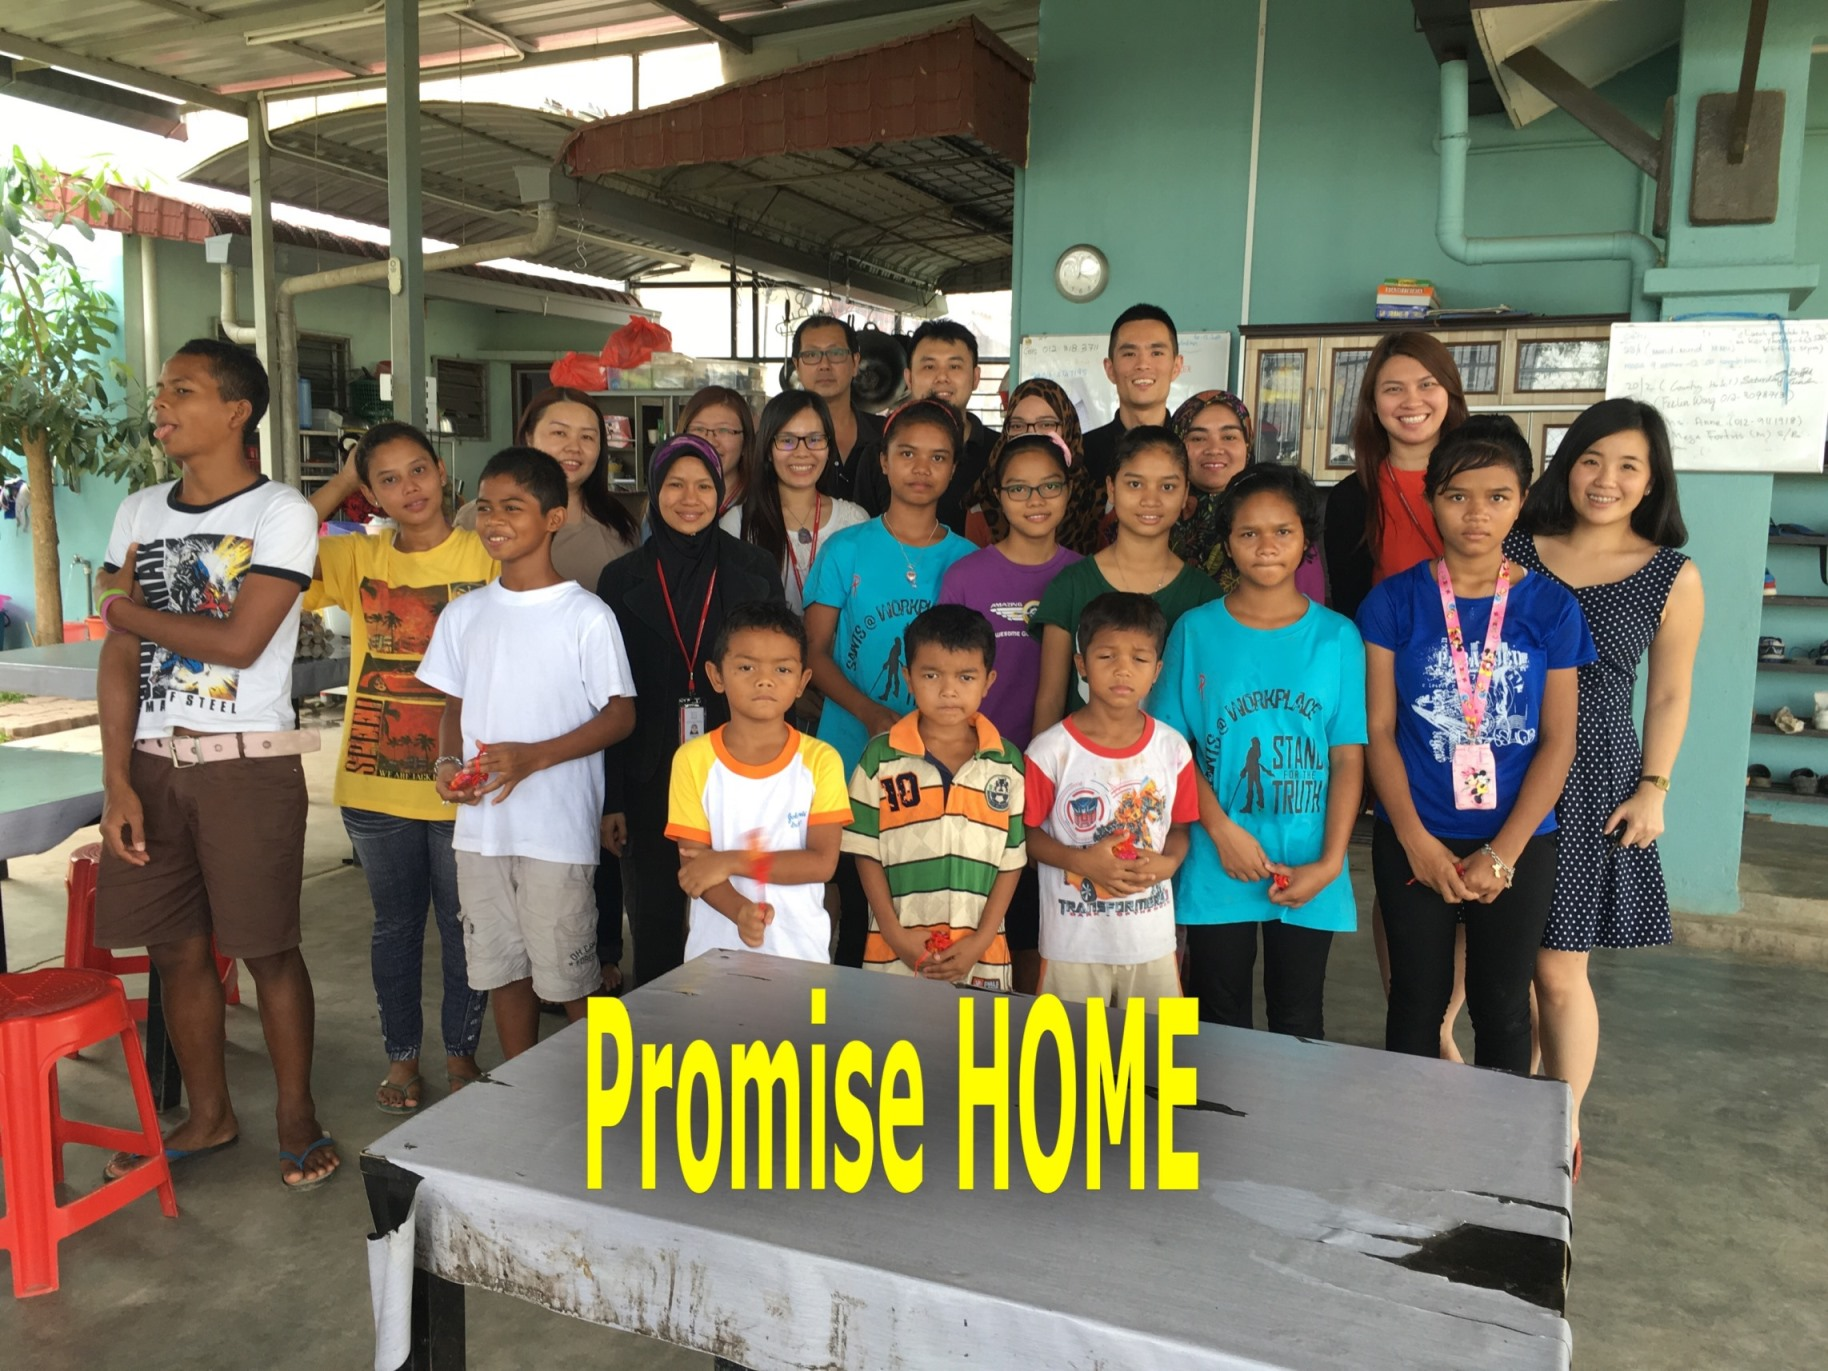 Donation Drive to Promise Home 1